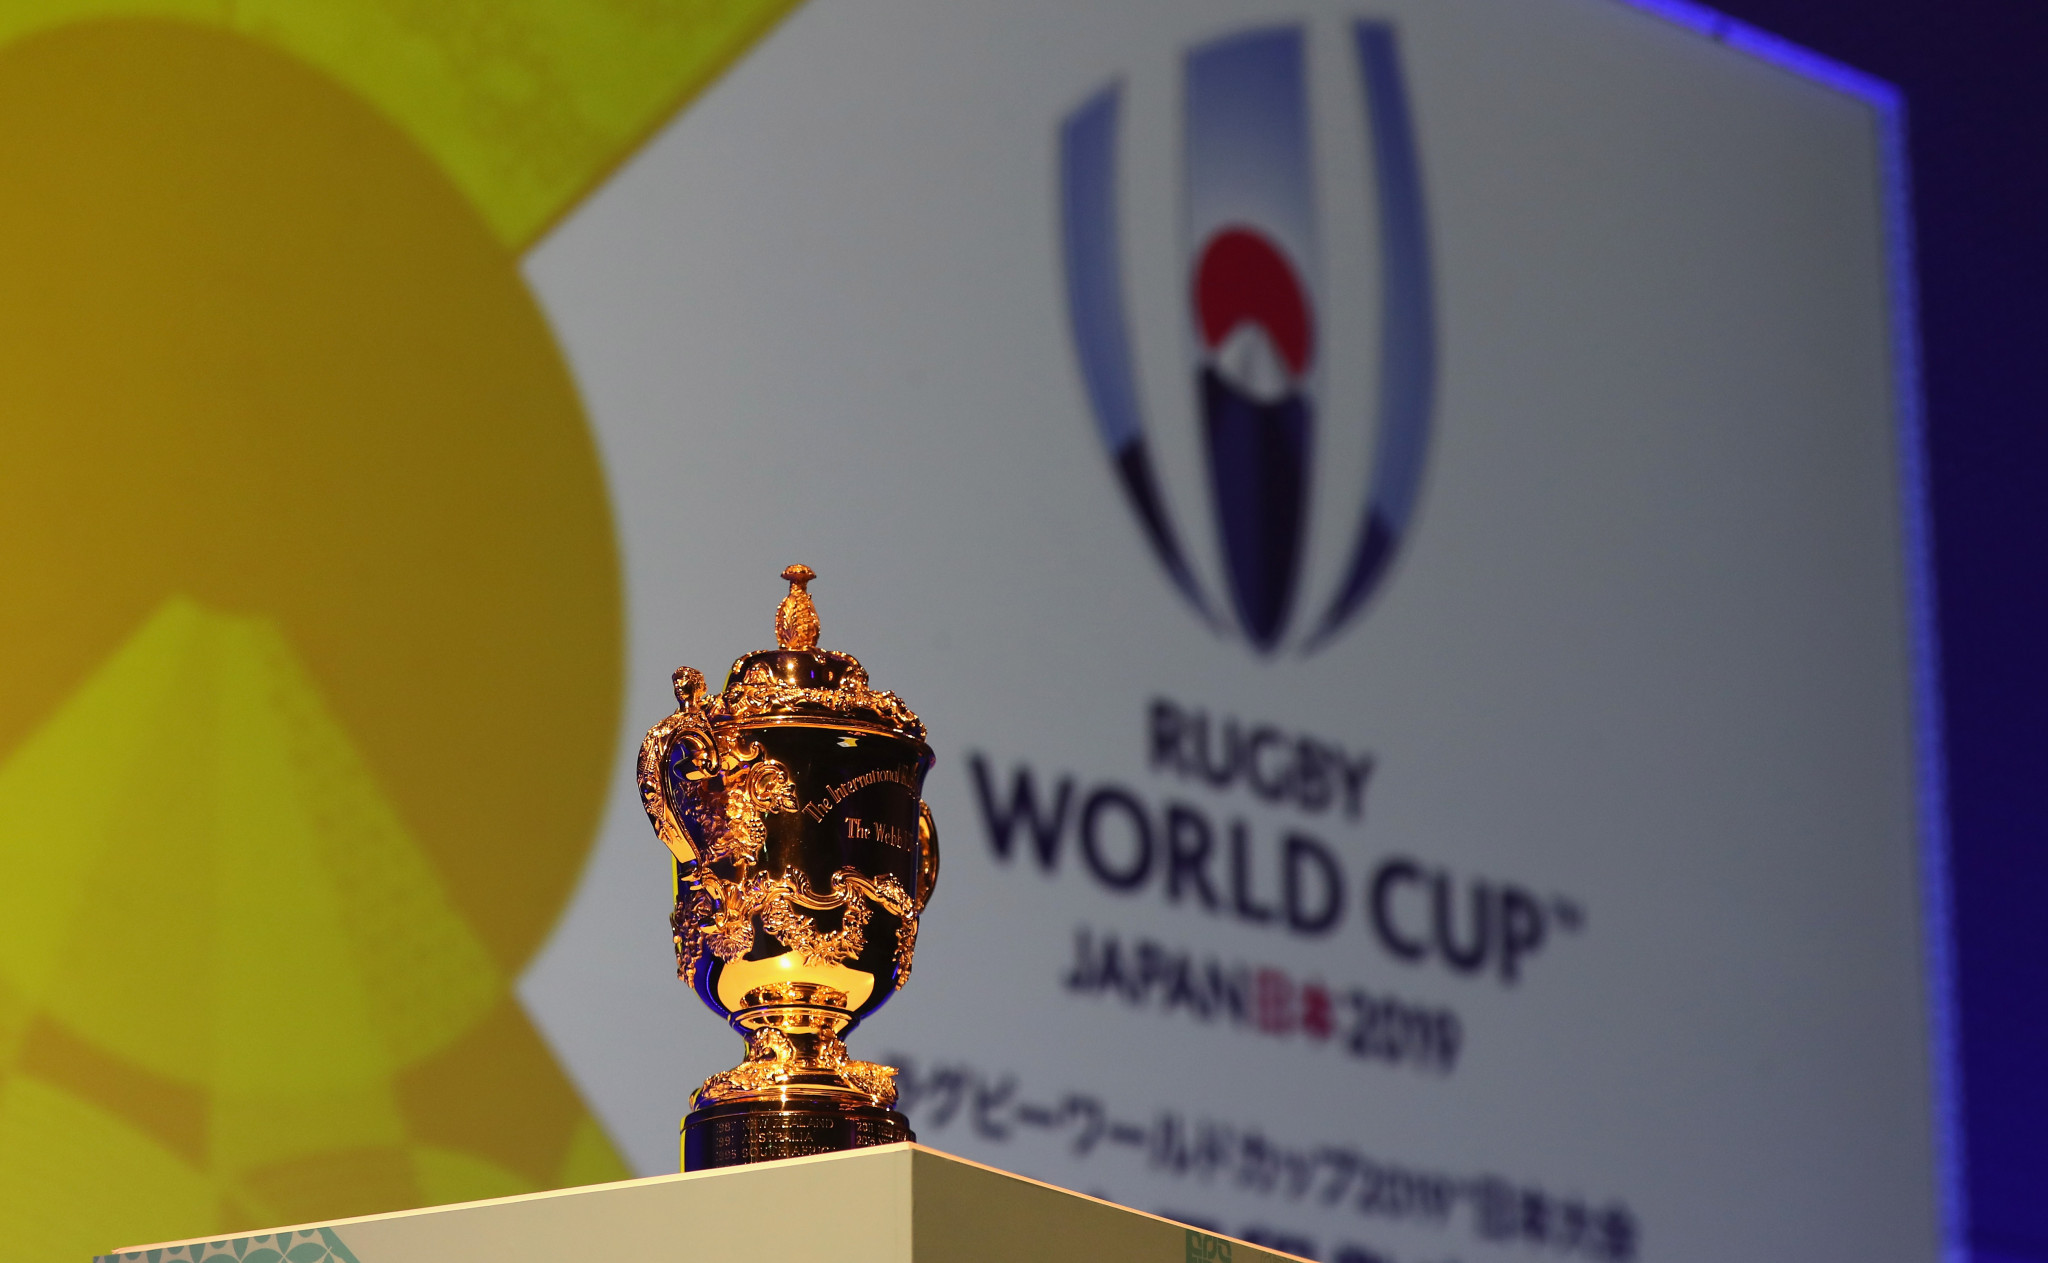 World Rugby claim 2019 World Cup will deliver record economic benefits to Japan